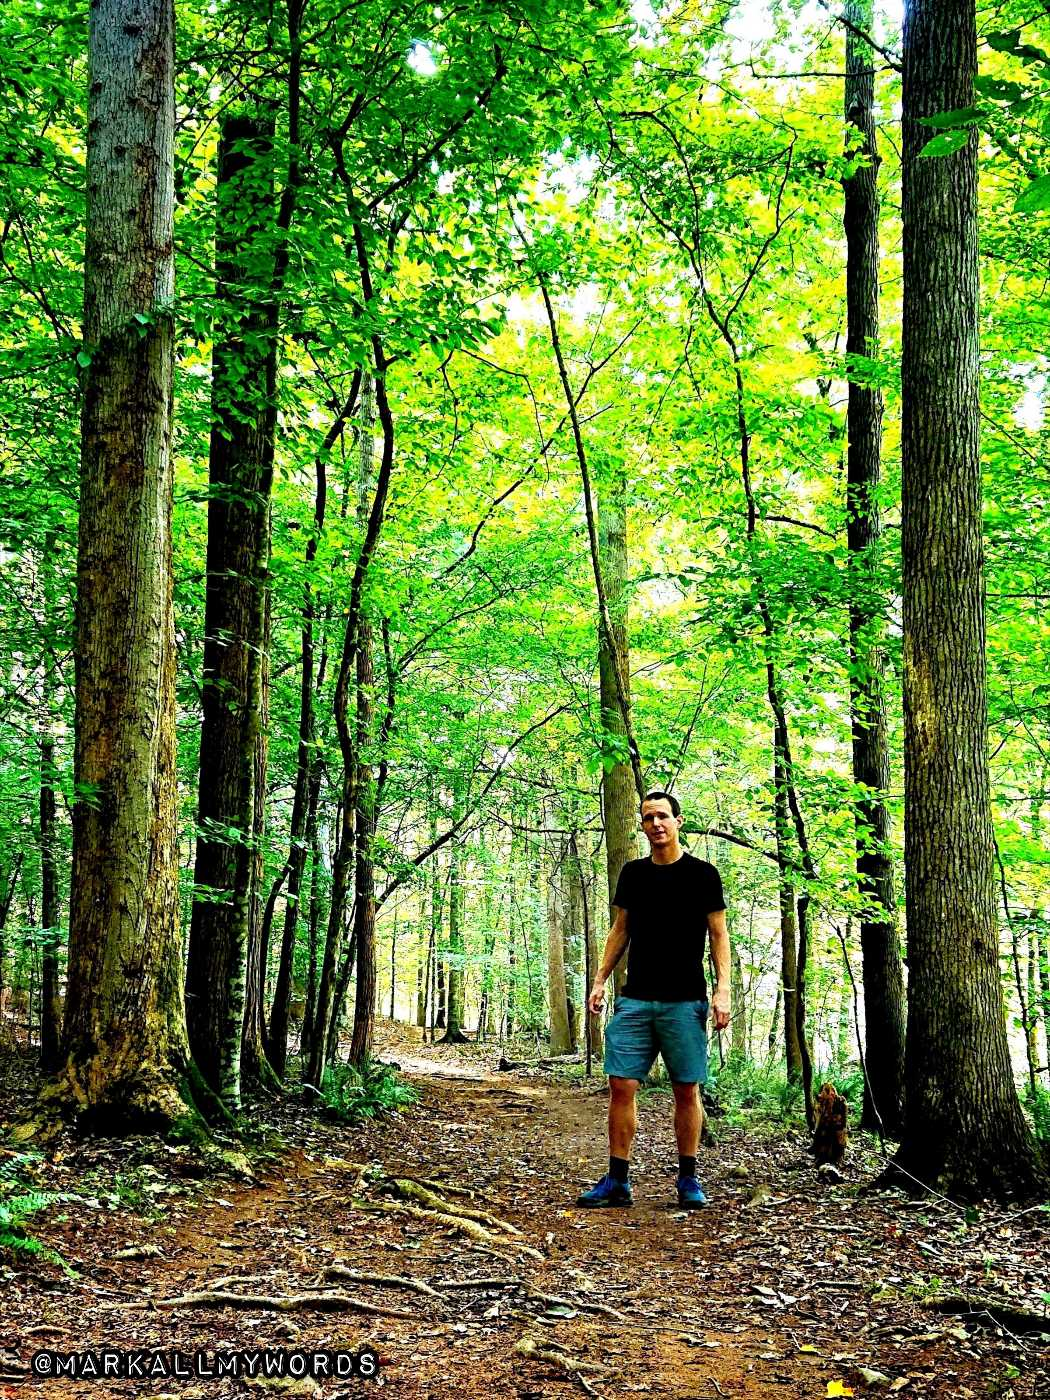 A hiker stands on a trail surrounded by trees.